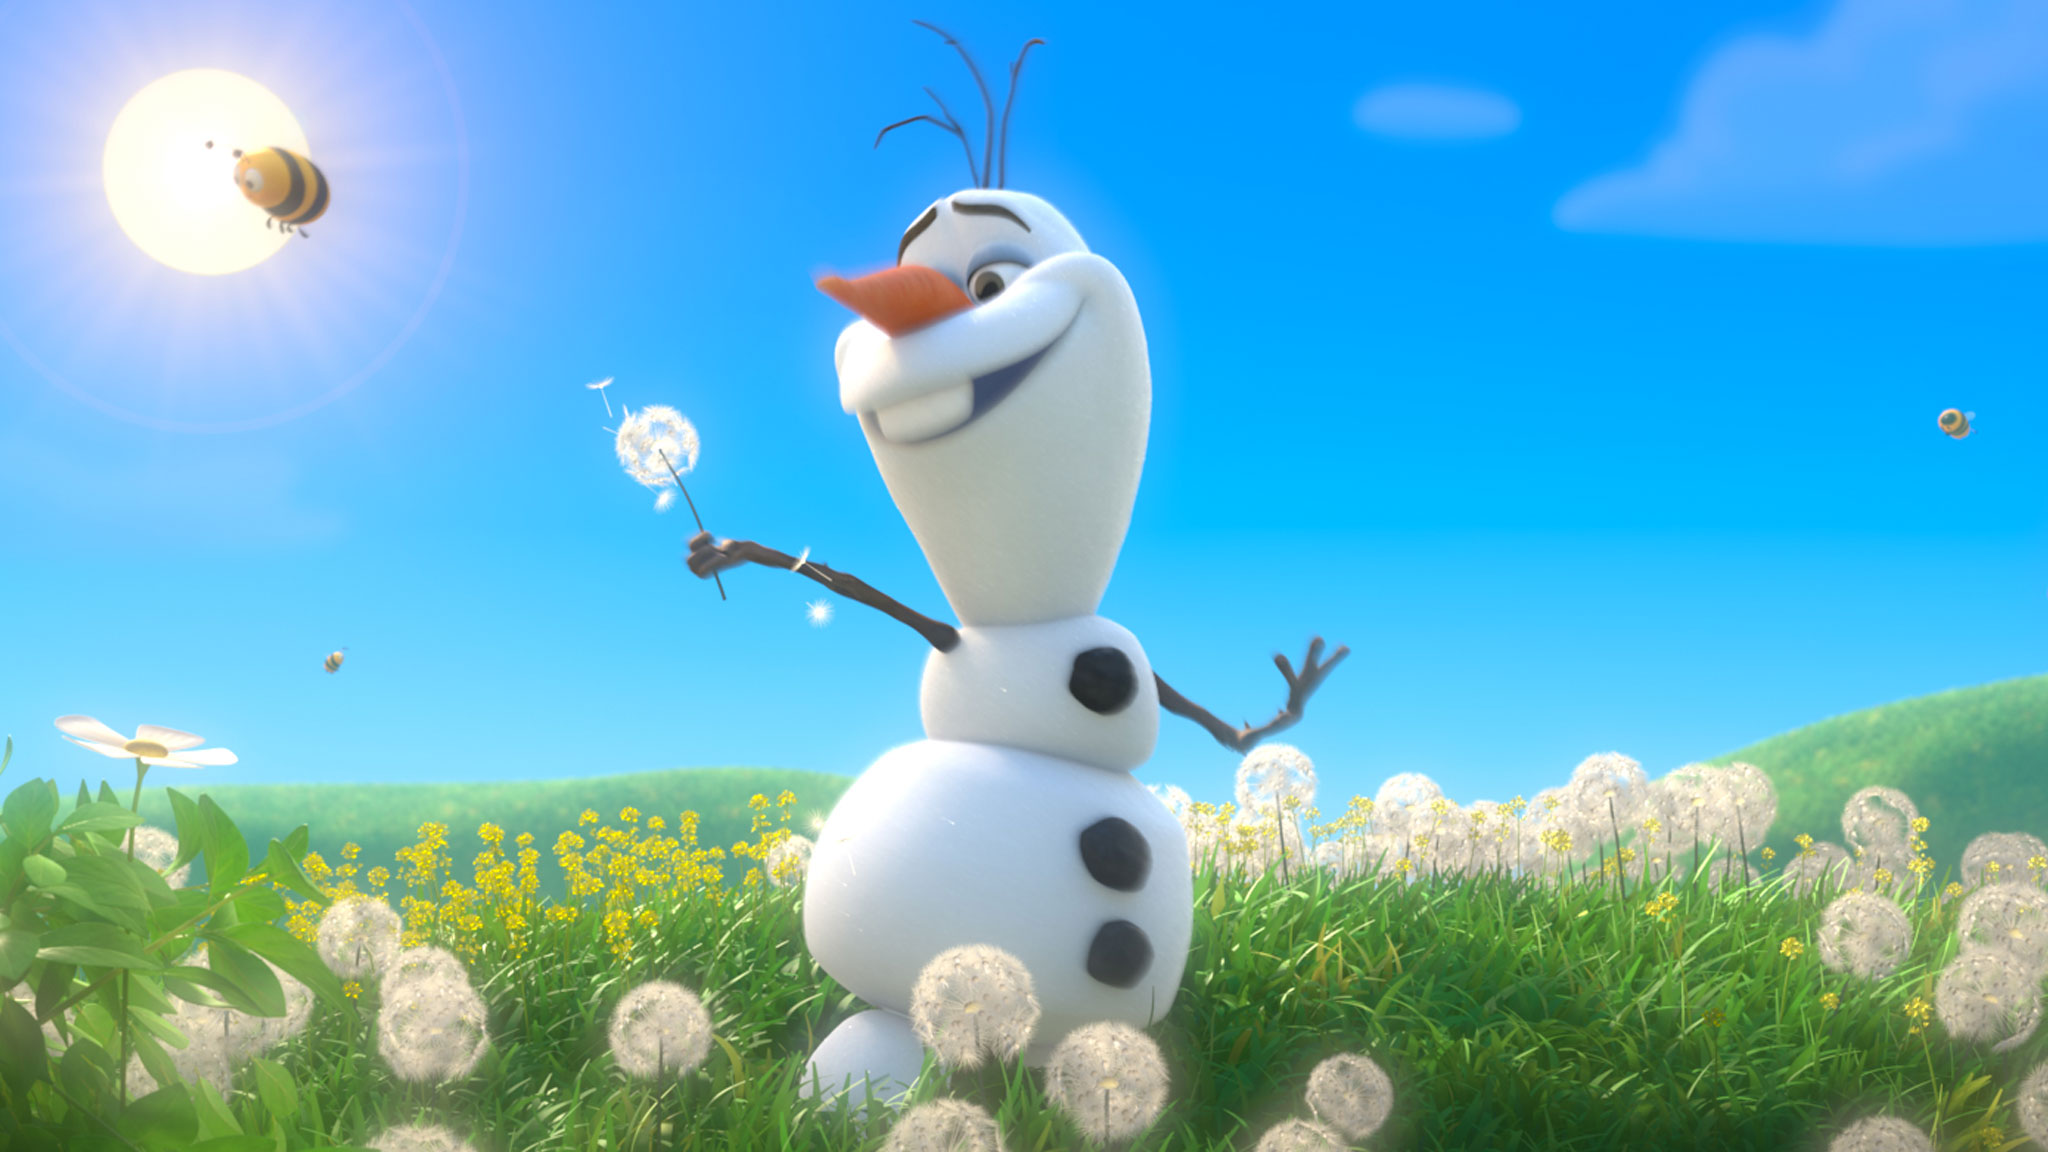 Olaf The Snowman Wallpaper Hd Images Pictures   Becuo 2048x1152